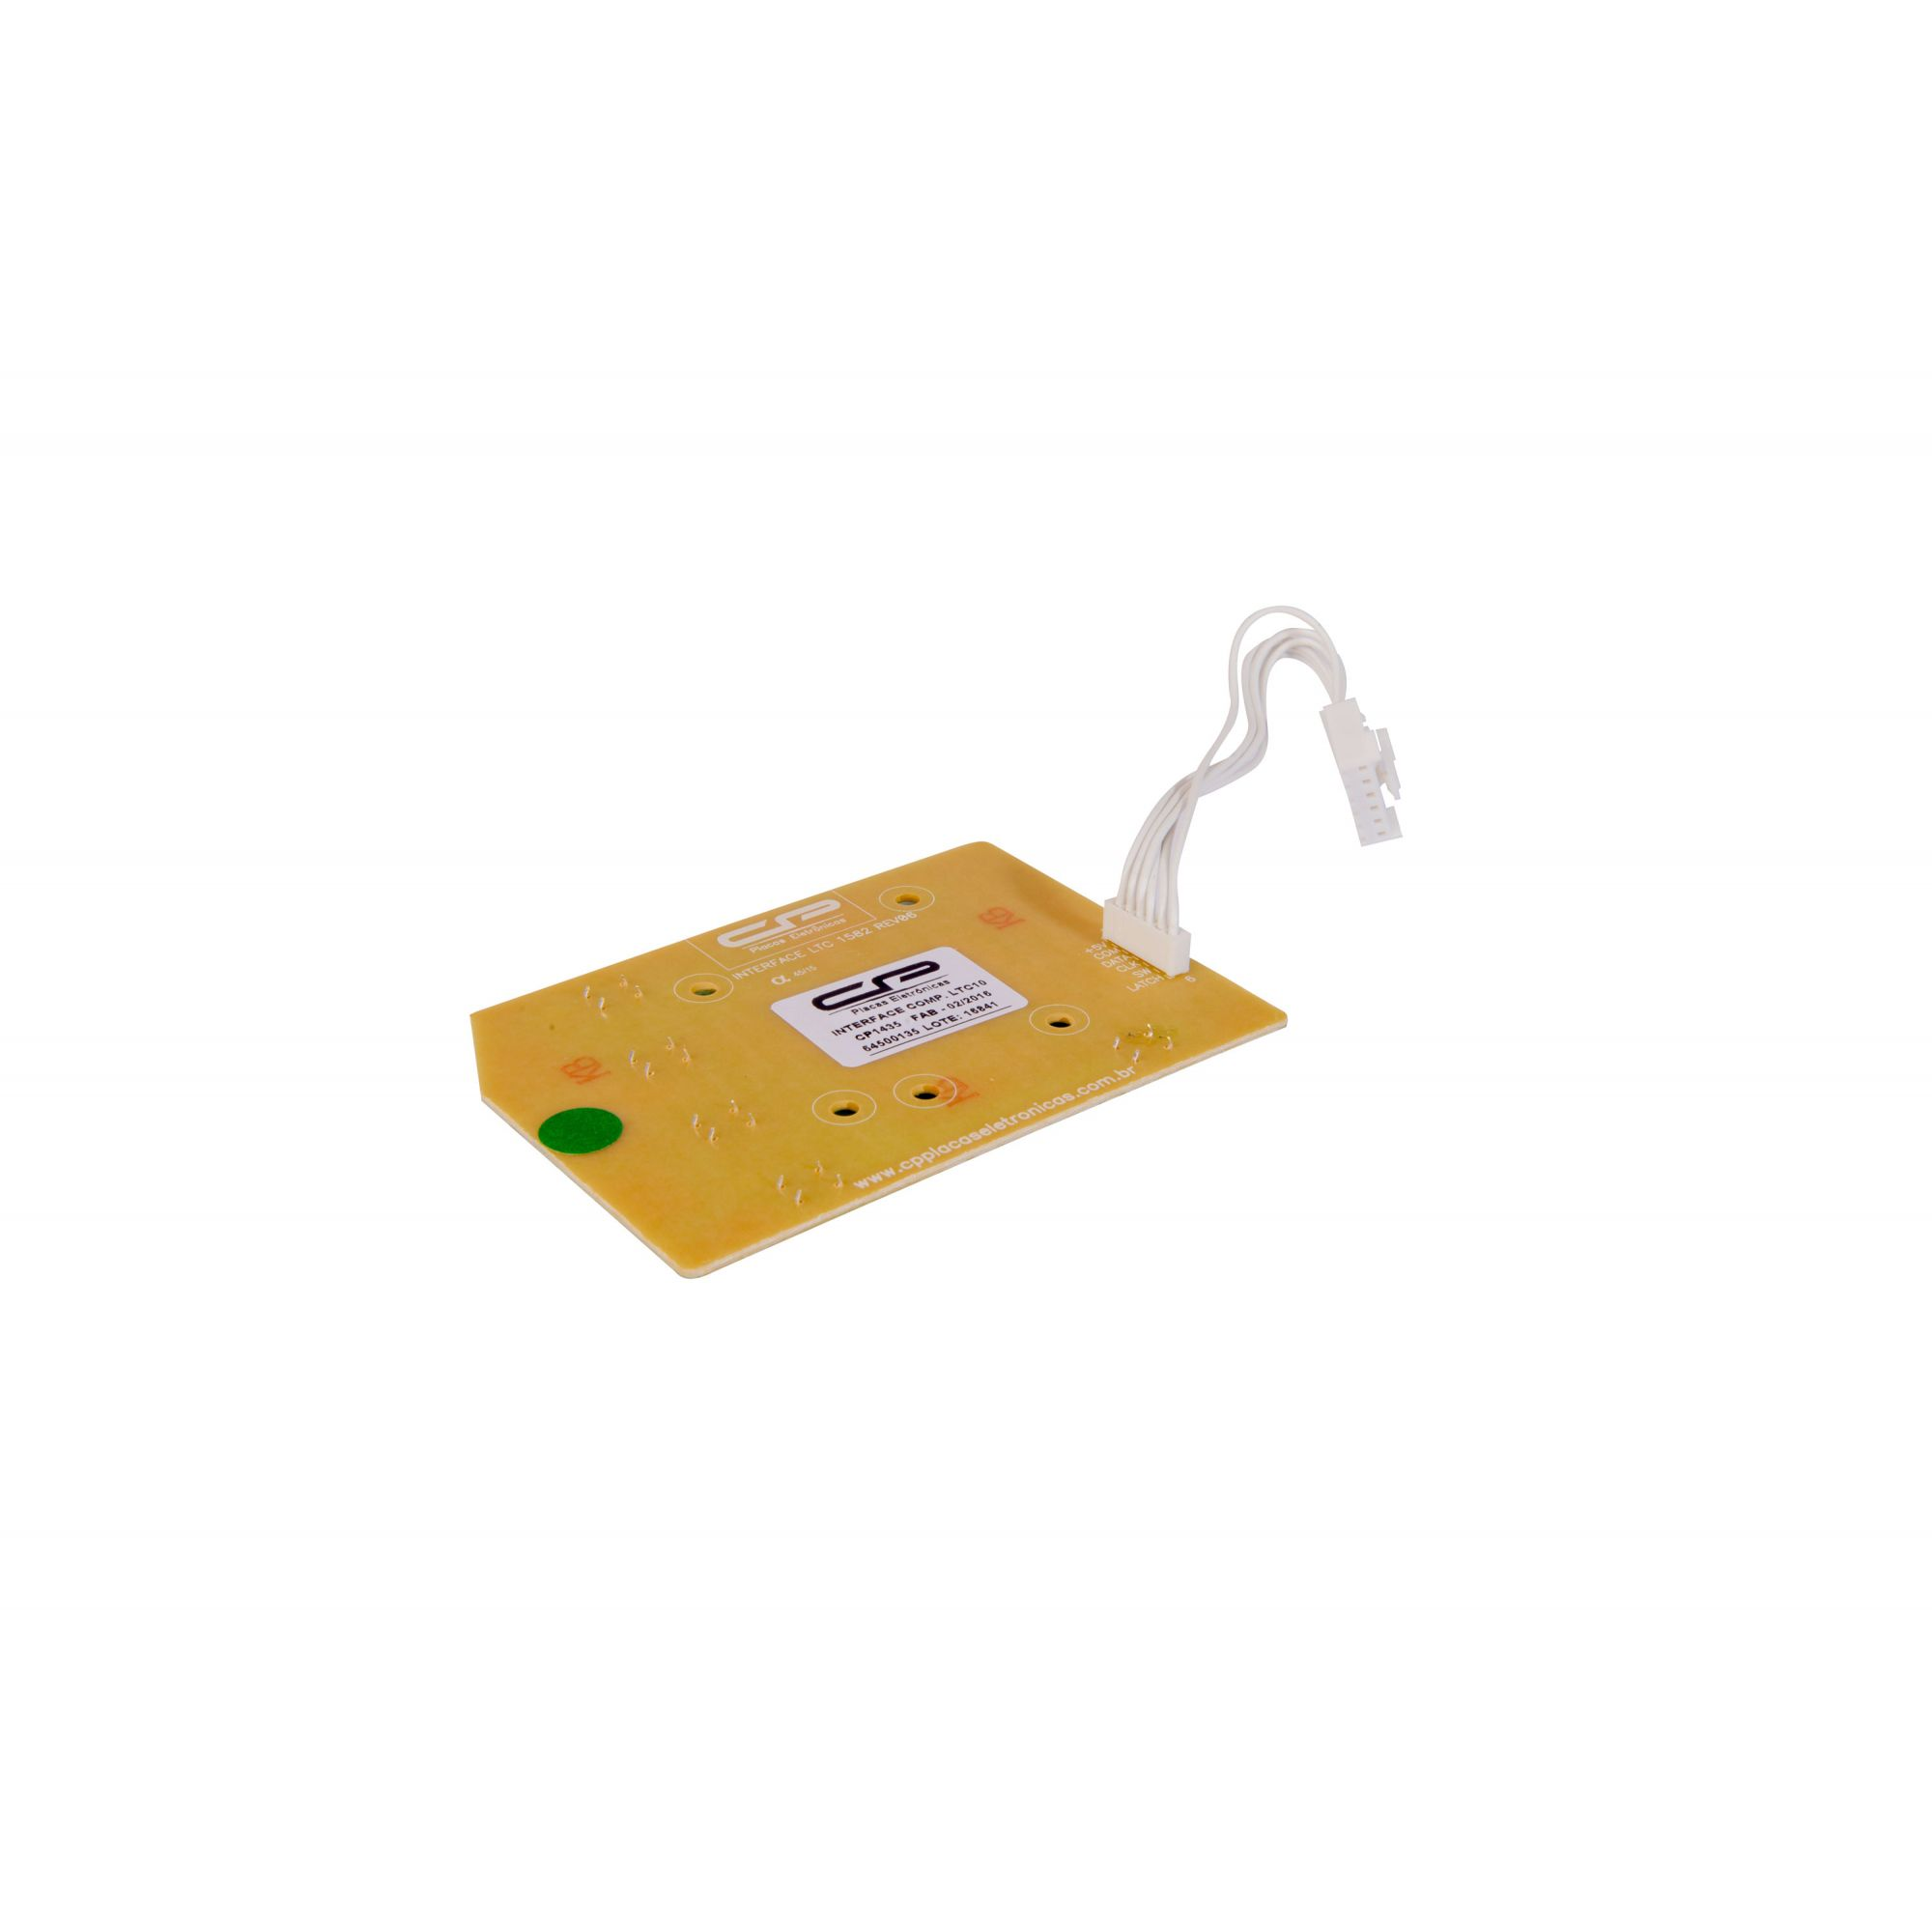 Placa Interface  Lavadora LTC10 / LTC12 / LTC15 / LT11F / LT12F / LT15F / LTD09 / LTD11 (CP1435)